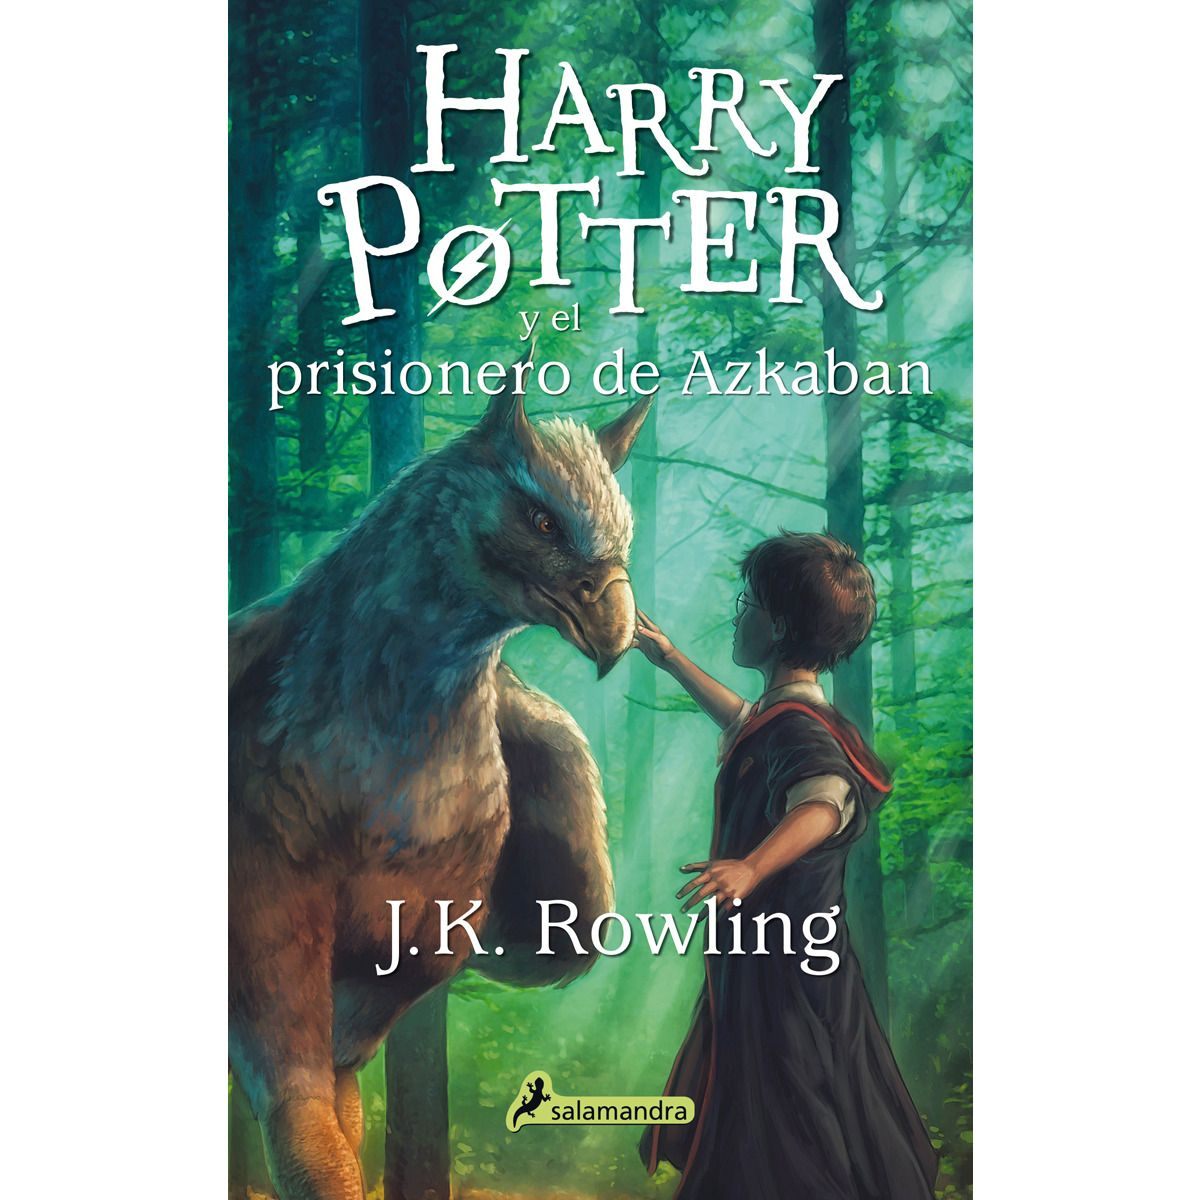 19 Ideas De Libros Harry Potter En 2021 Libros De Harry Potter Harry Potter Cubiertas De Libros De Harry Potter